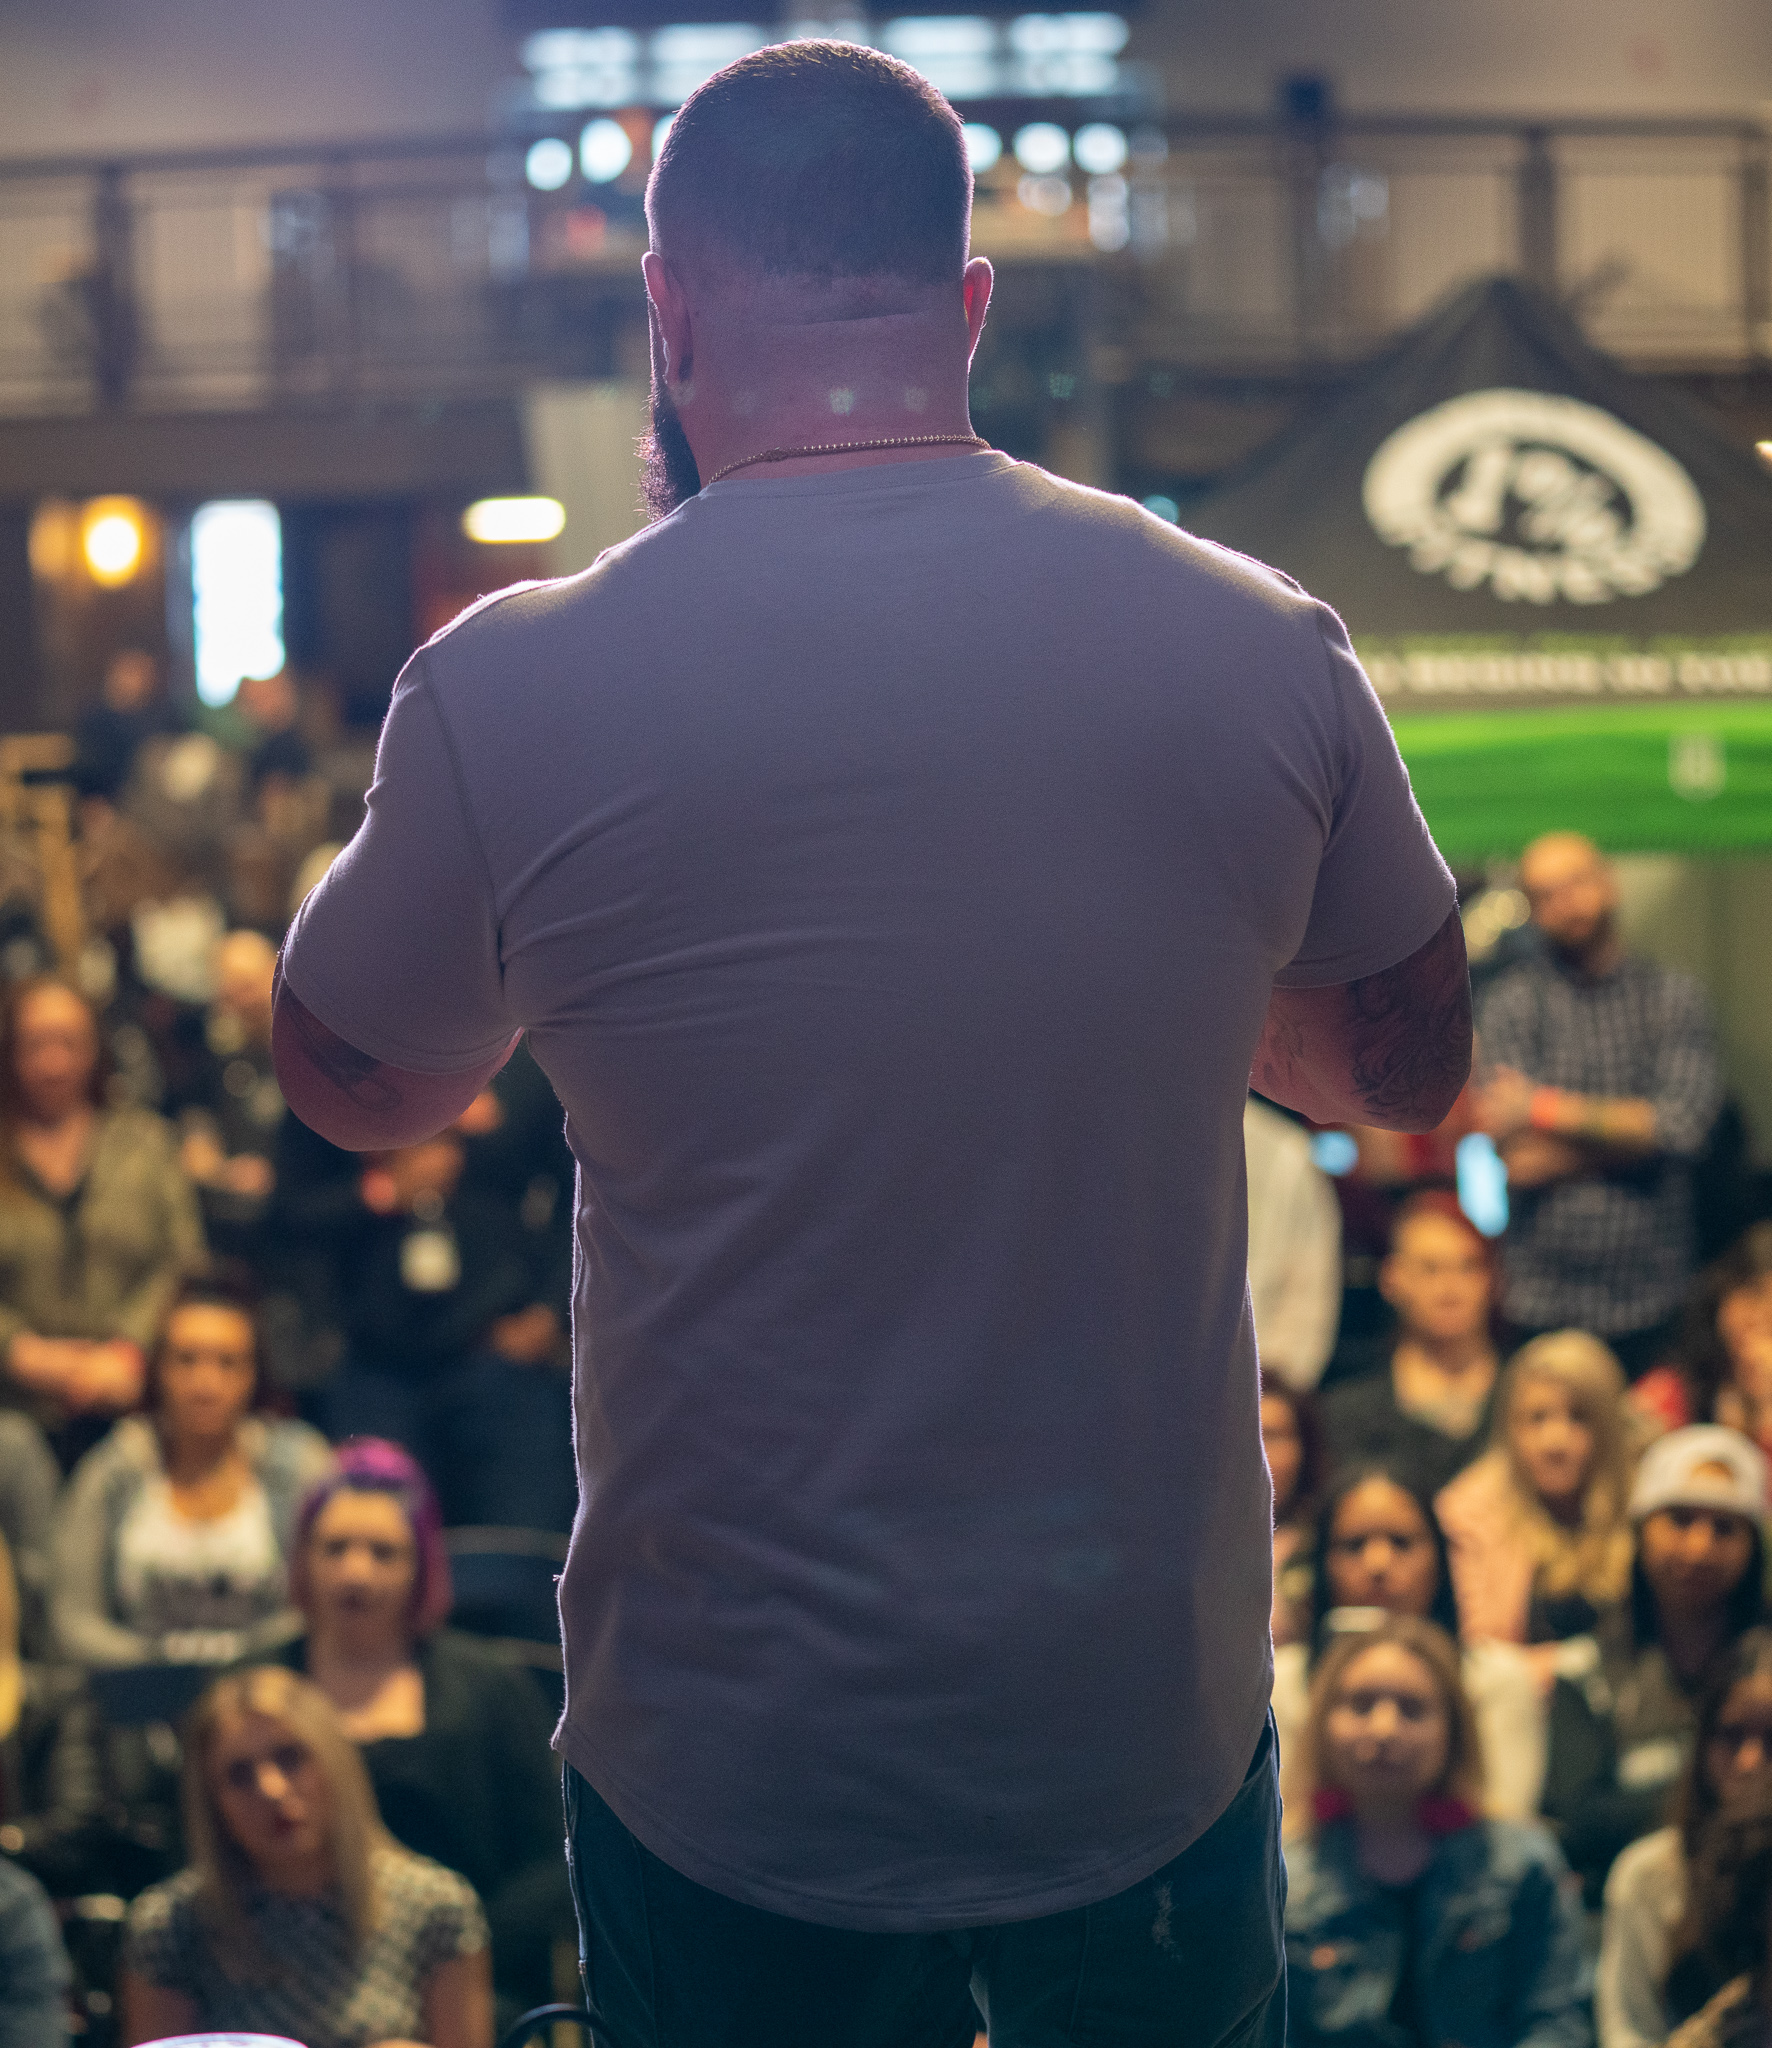 Jay Majors presenting at 2019 SL Beauty and Barber Expo.